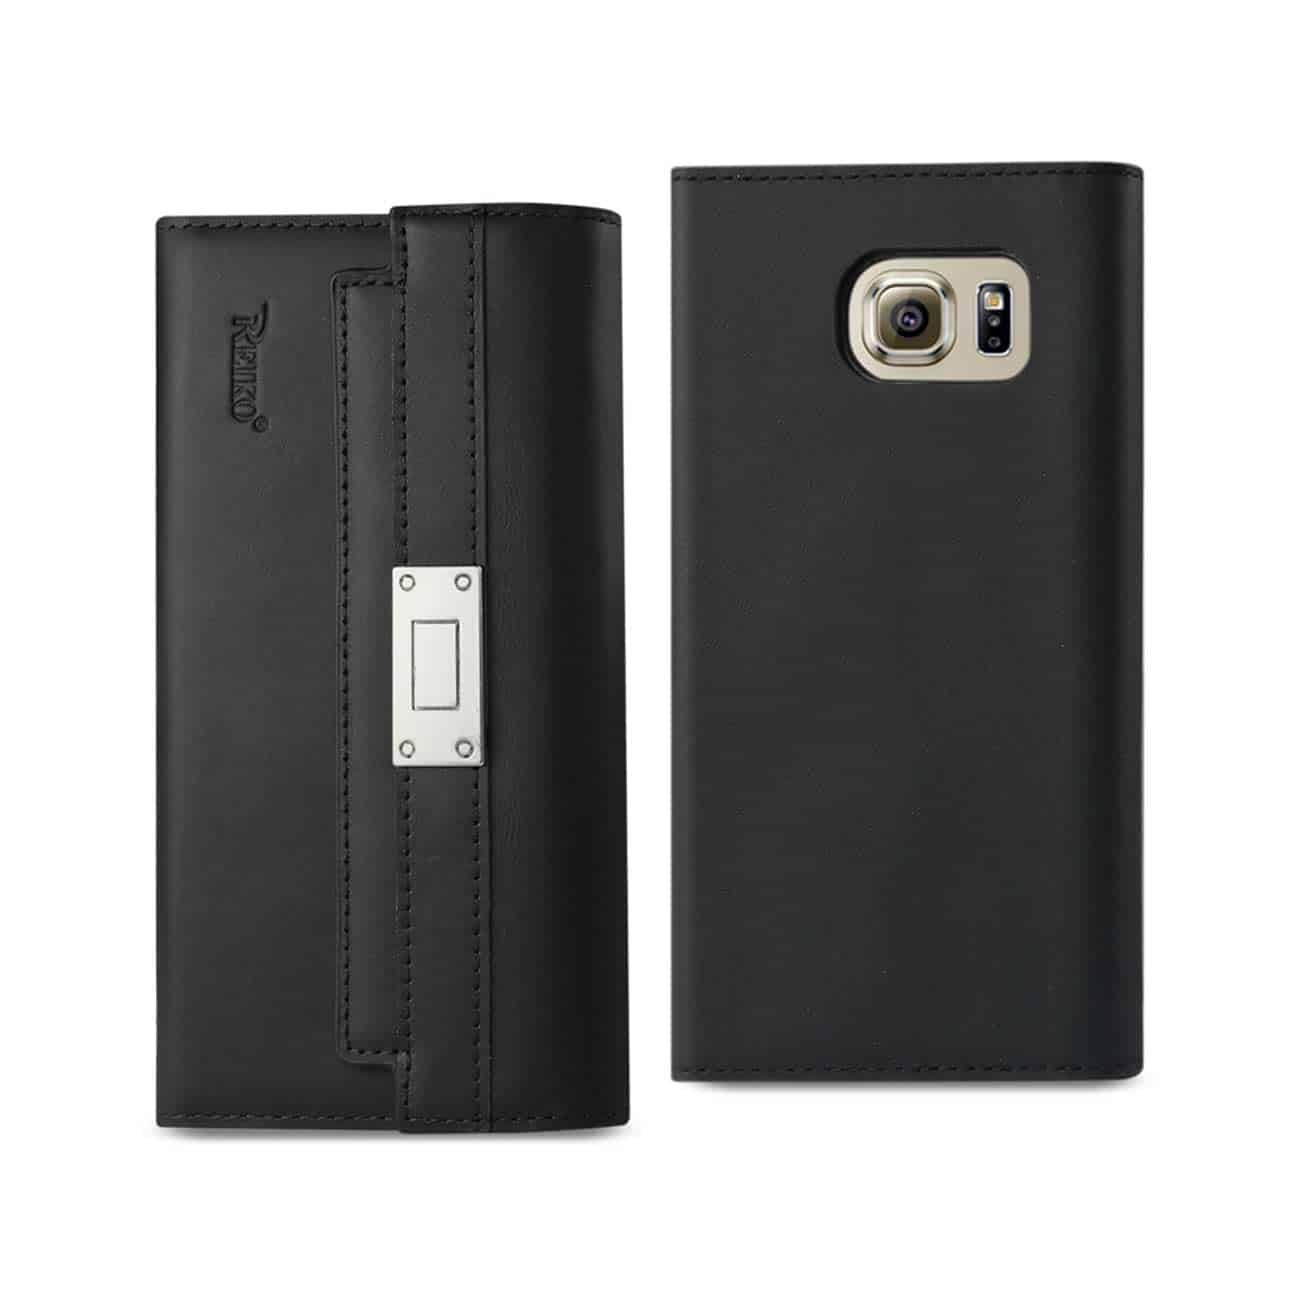 SAMSUNG GALAXY S6 GENUINE LEATHER RFID WALLET CASE AND METAL BUCKLE BELT IN BLACK